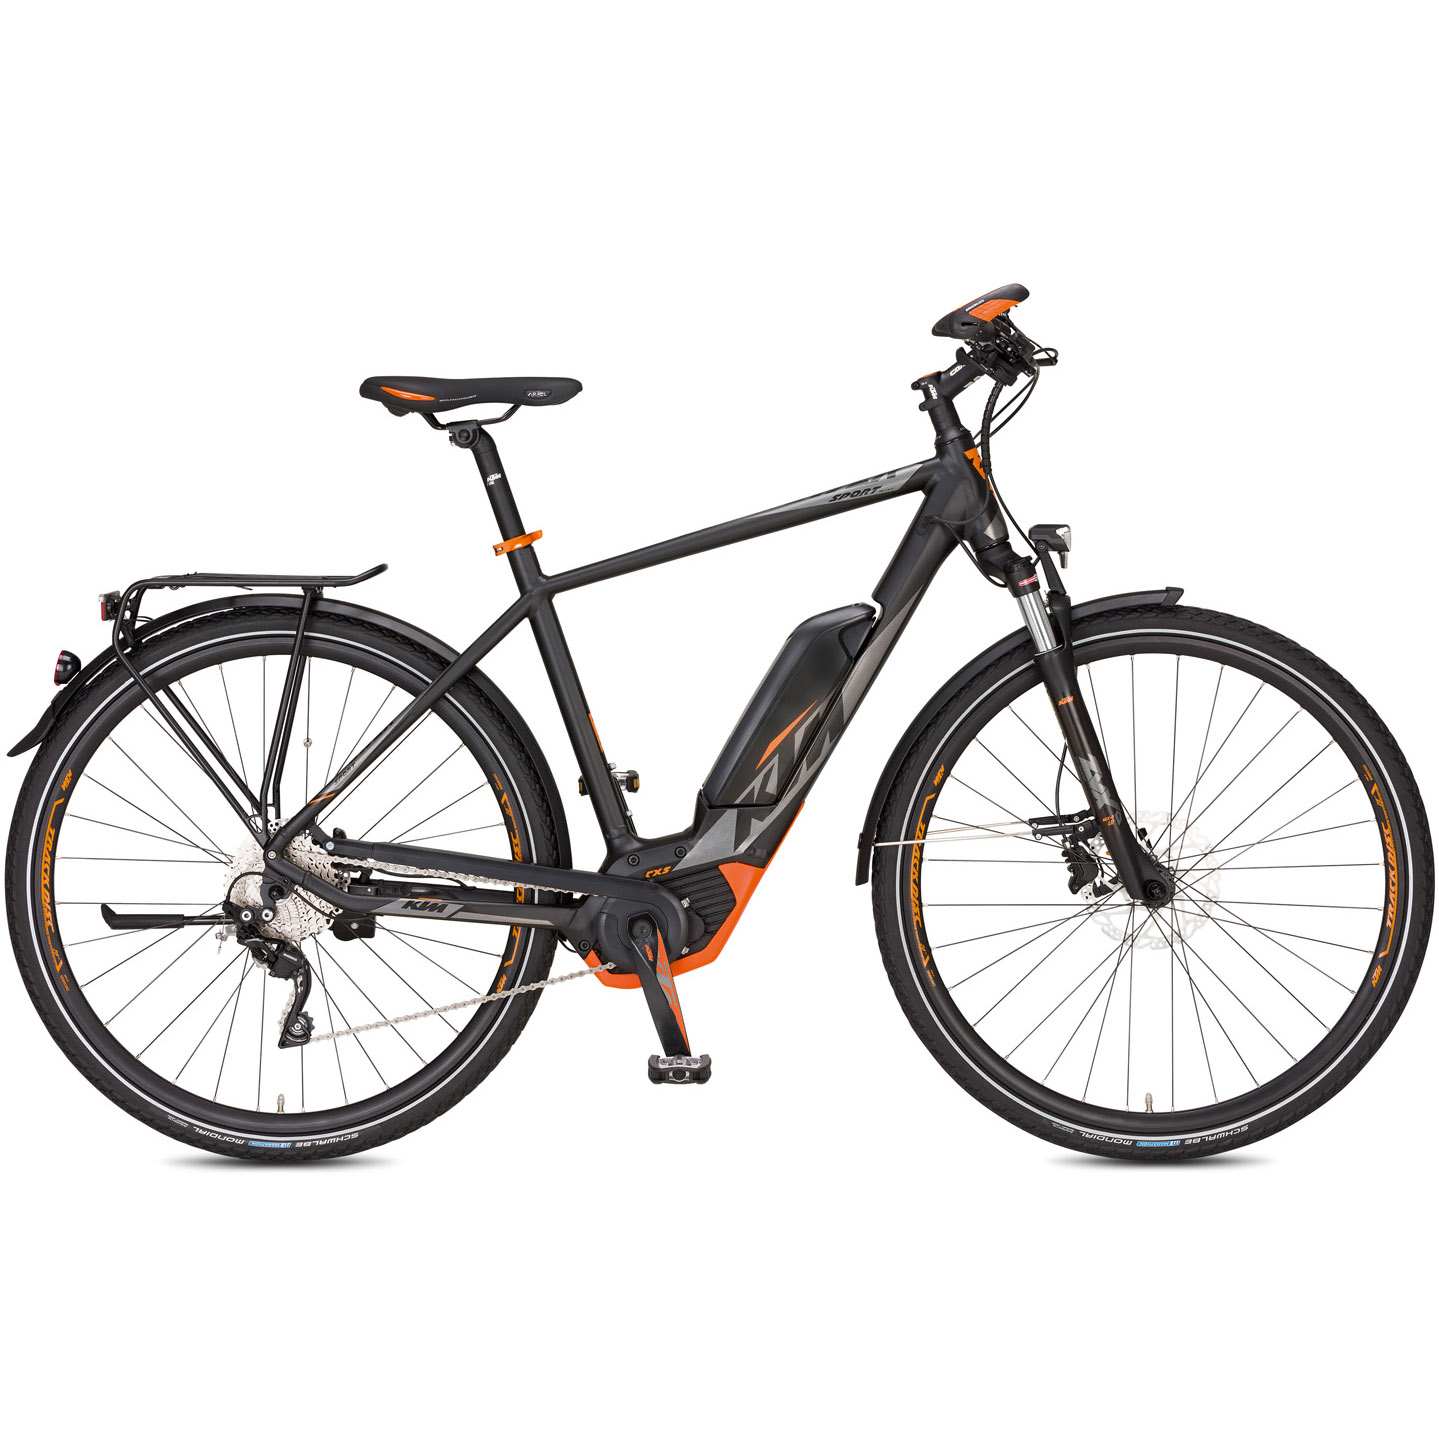 ktm power sport 10 cx 5 e trekkingrad trapez 46 cm online shop zweirad stadler. Black Bedroom Furniture Sets. Home Design Ideas